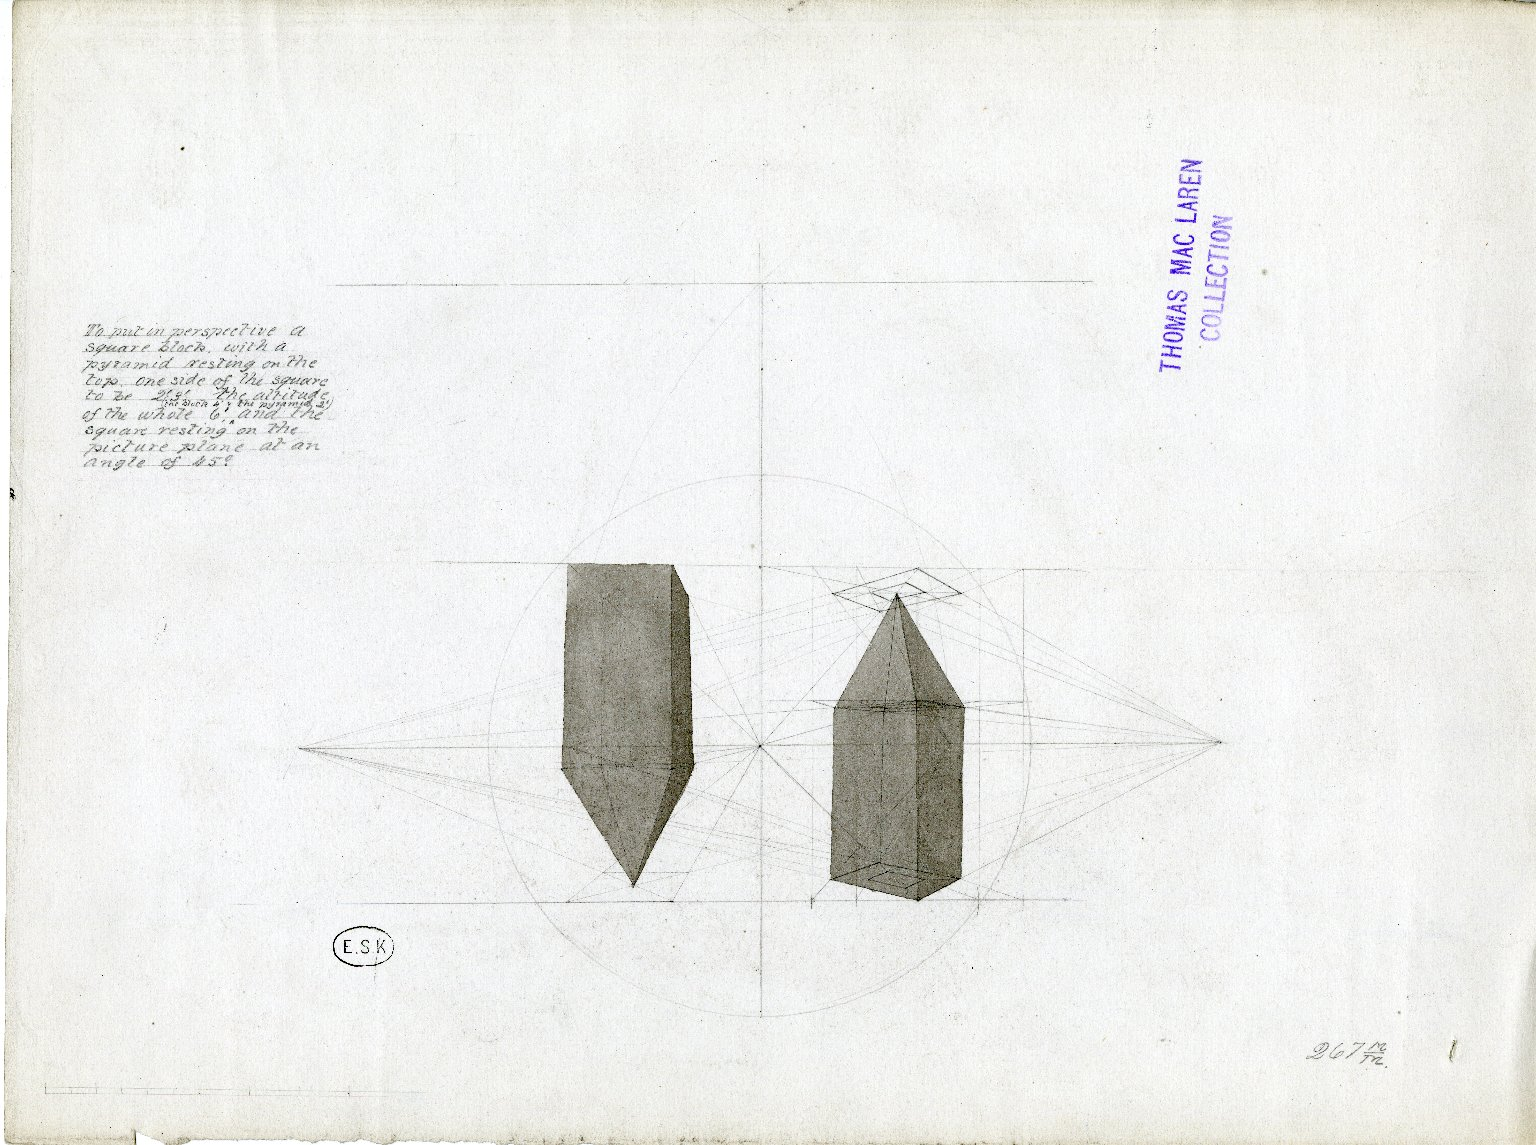 Perspective drawing of square block with pyramid-shaped top